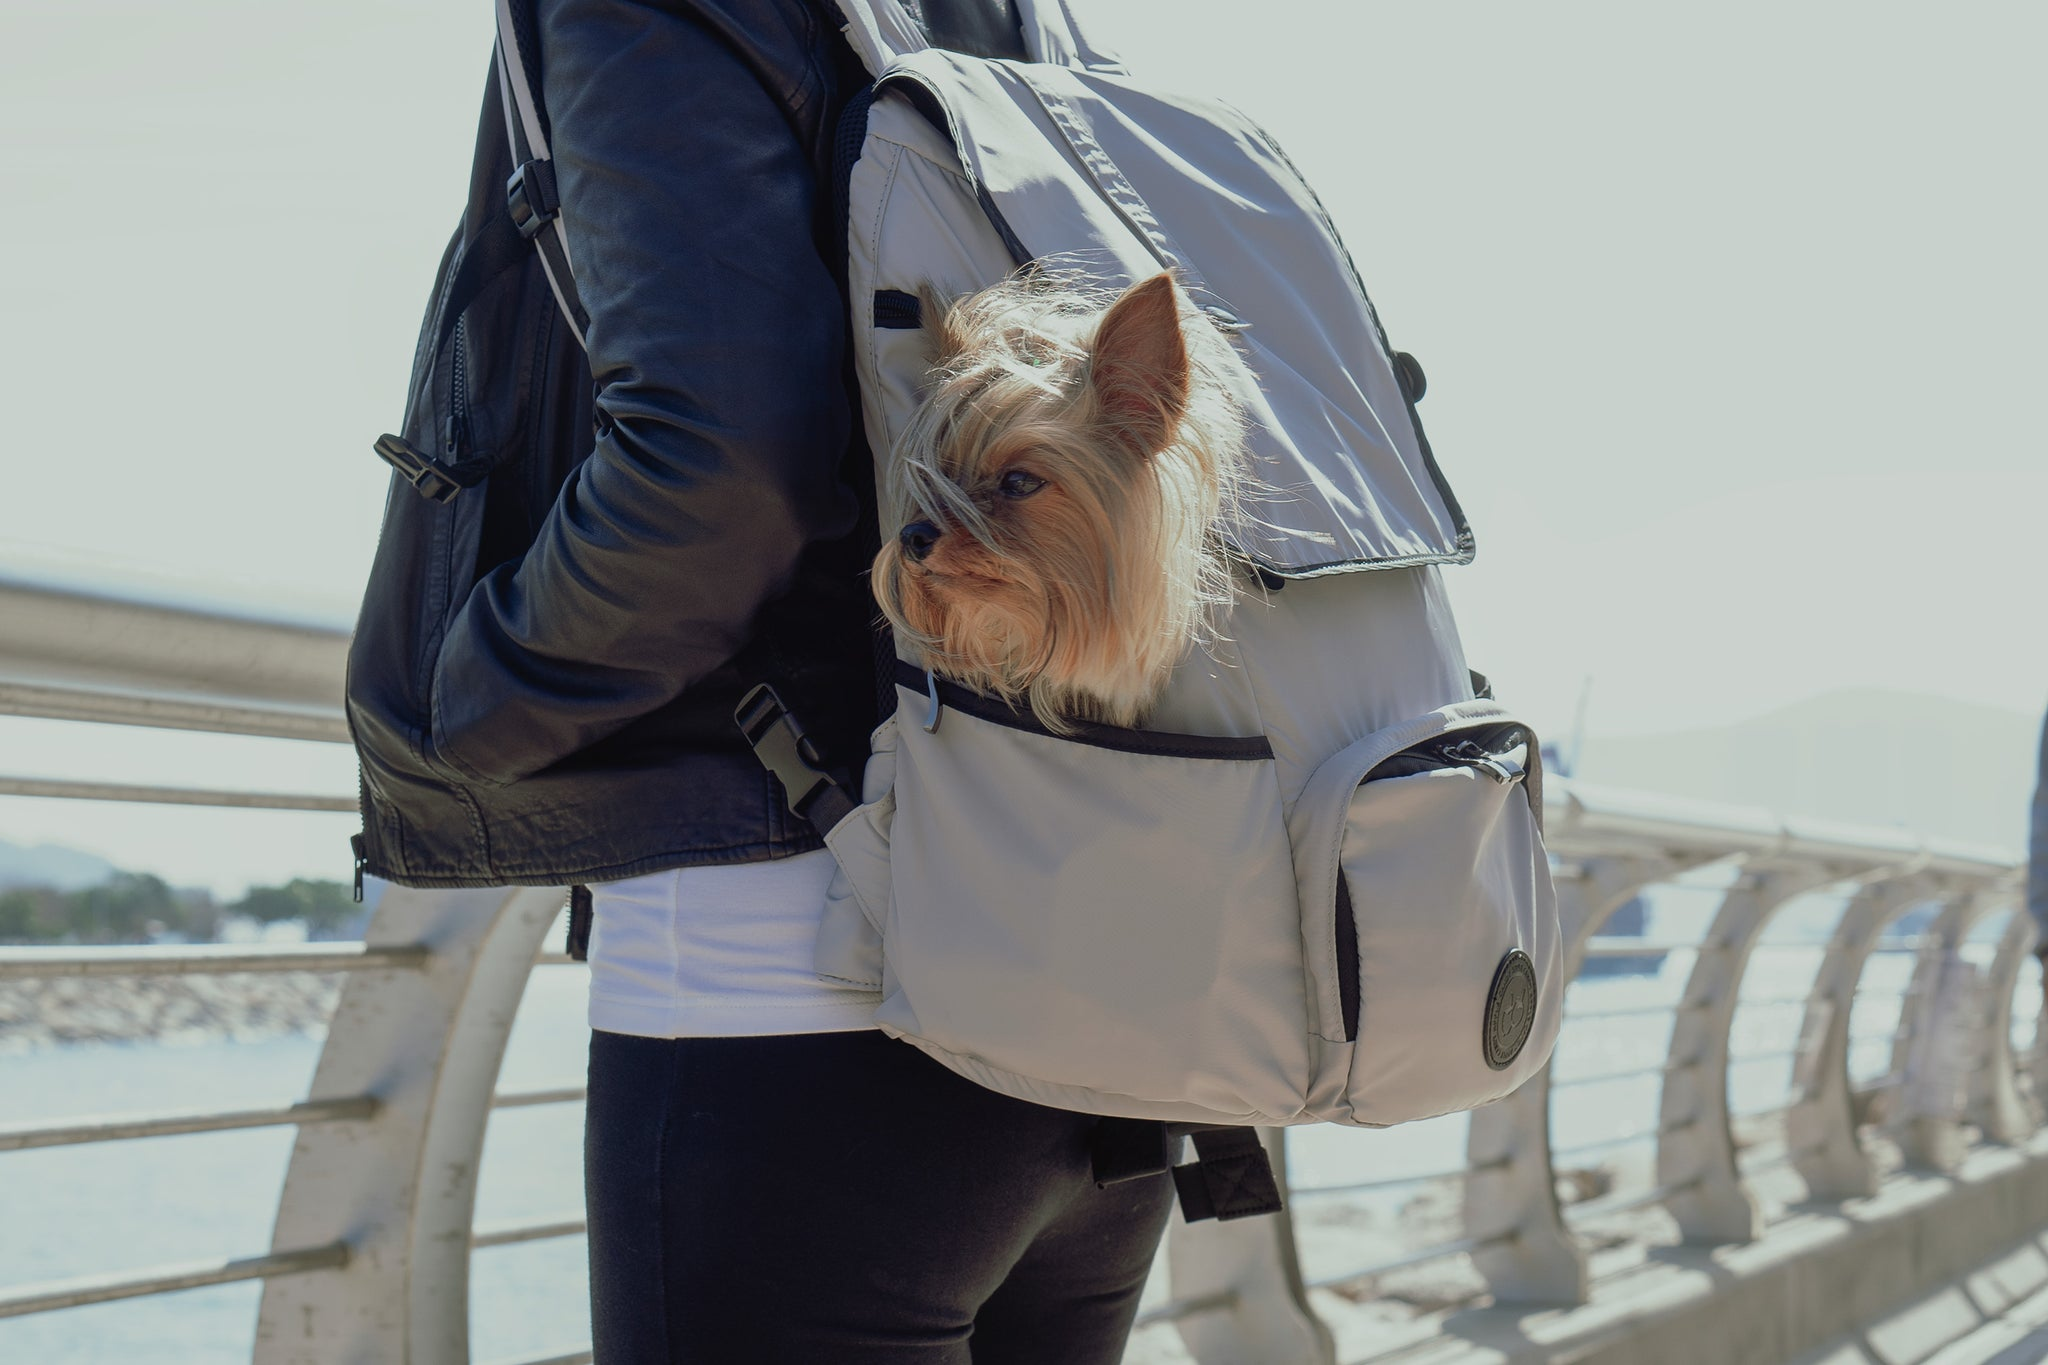 model carrying the backpack dog carrier at the waterfront Promenade